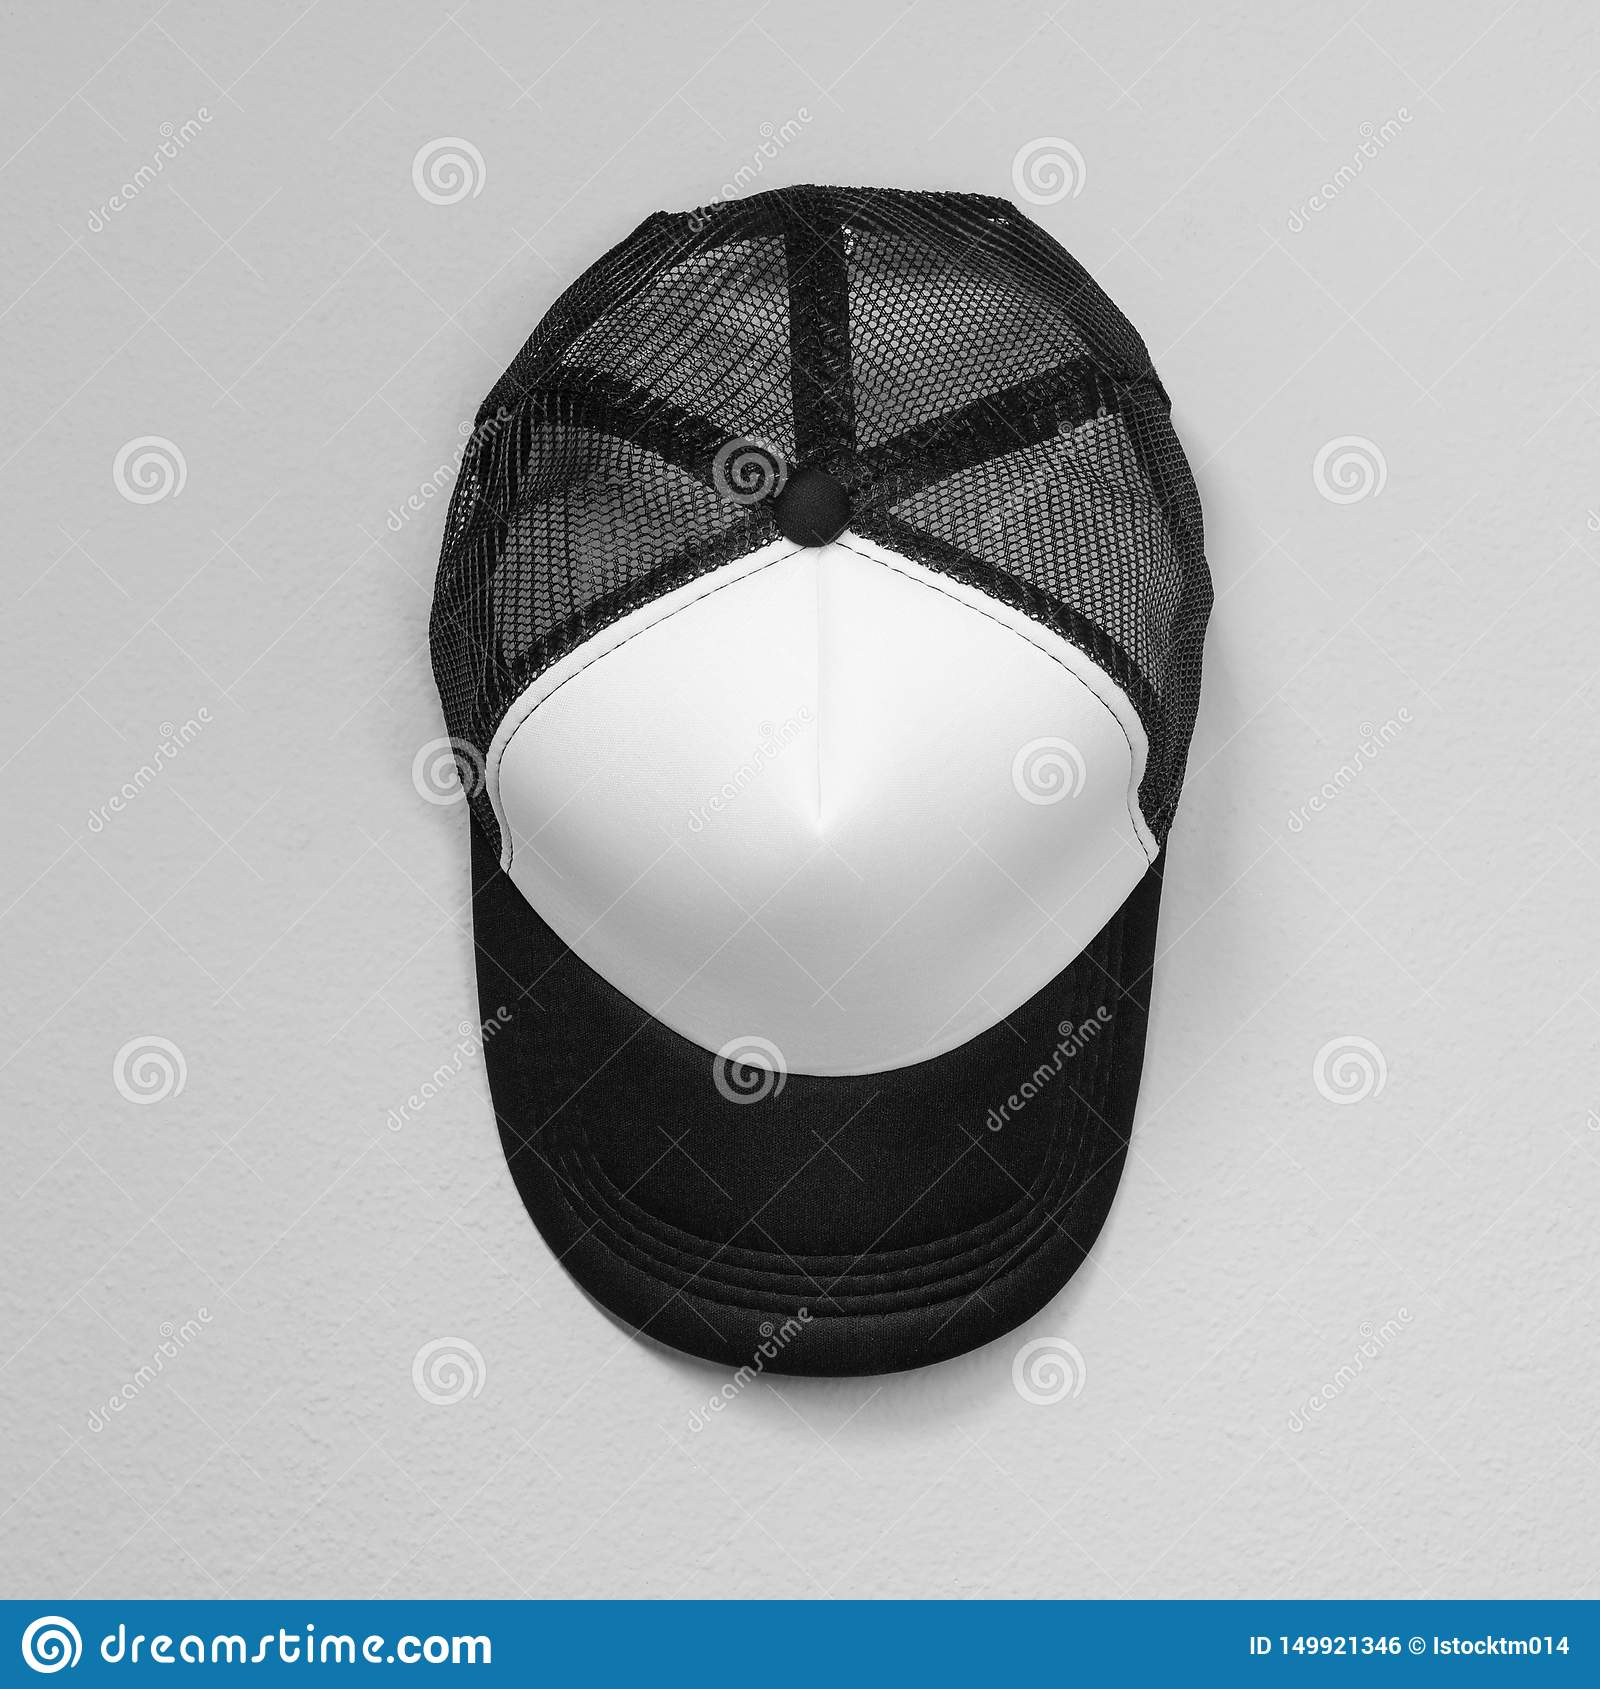 White caps with black nets on cement background. Top view angle of baseball cap